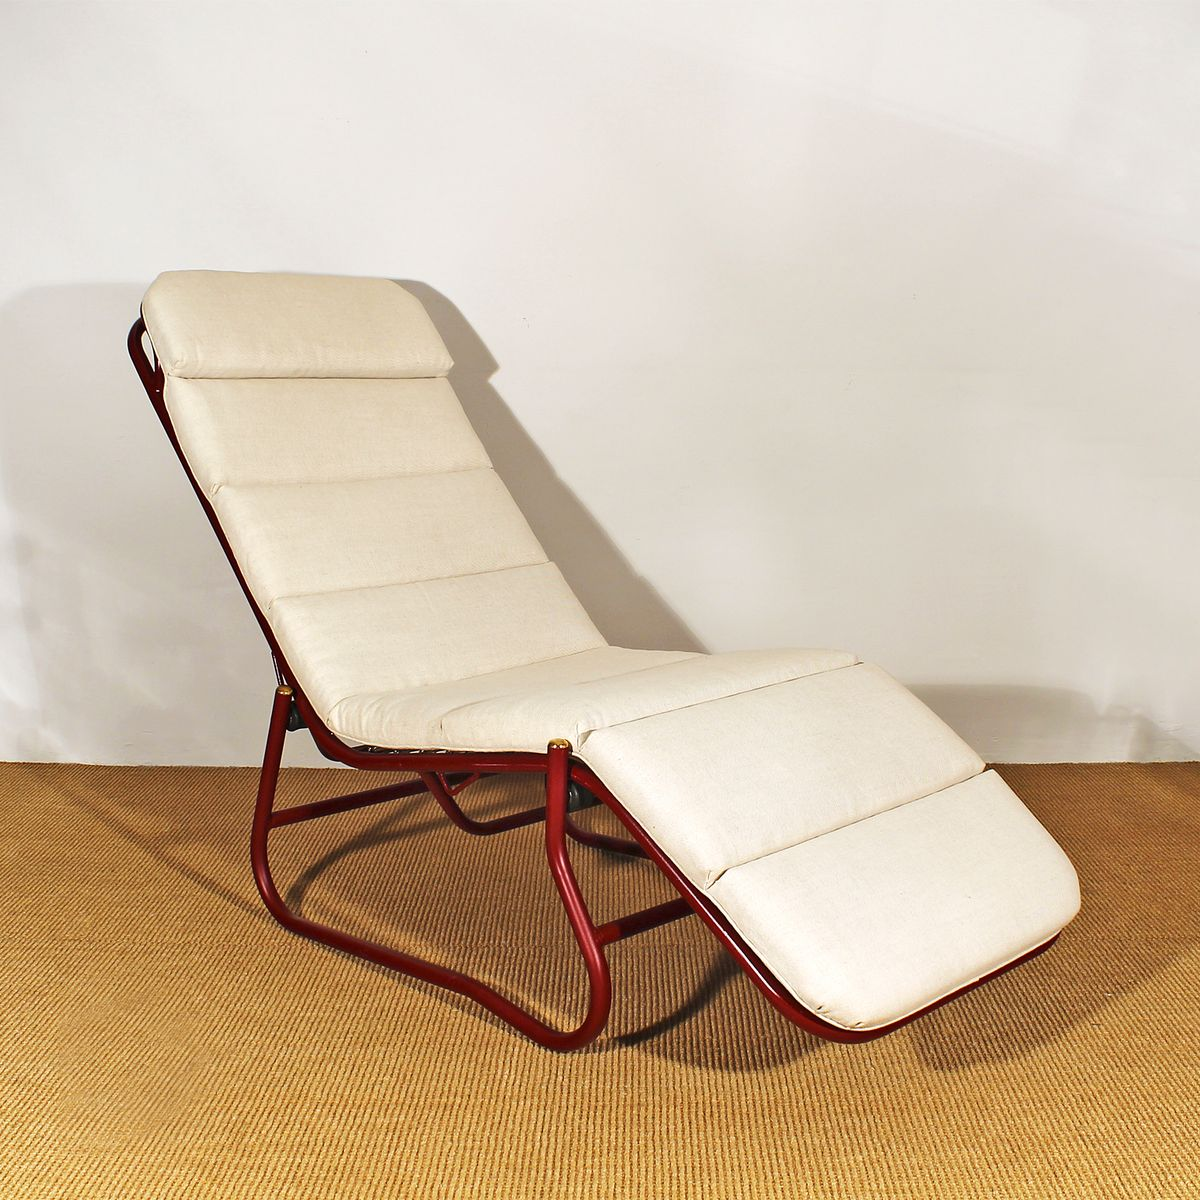 vintage bauhaus style chaise longue 1920s for sale at pamono. Black Bedroom Furniture Sets. Home Design Ideas